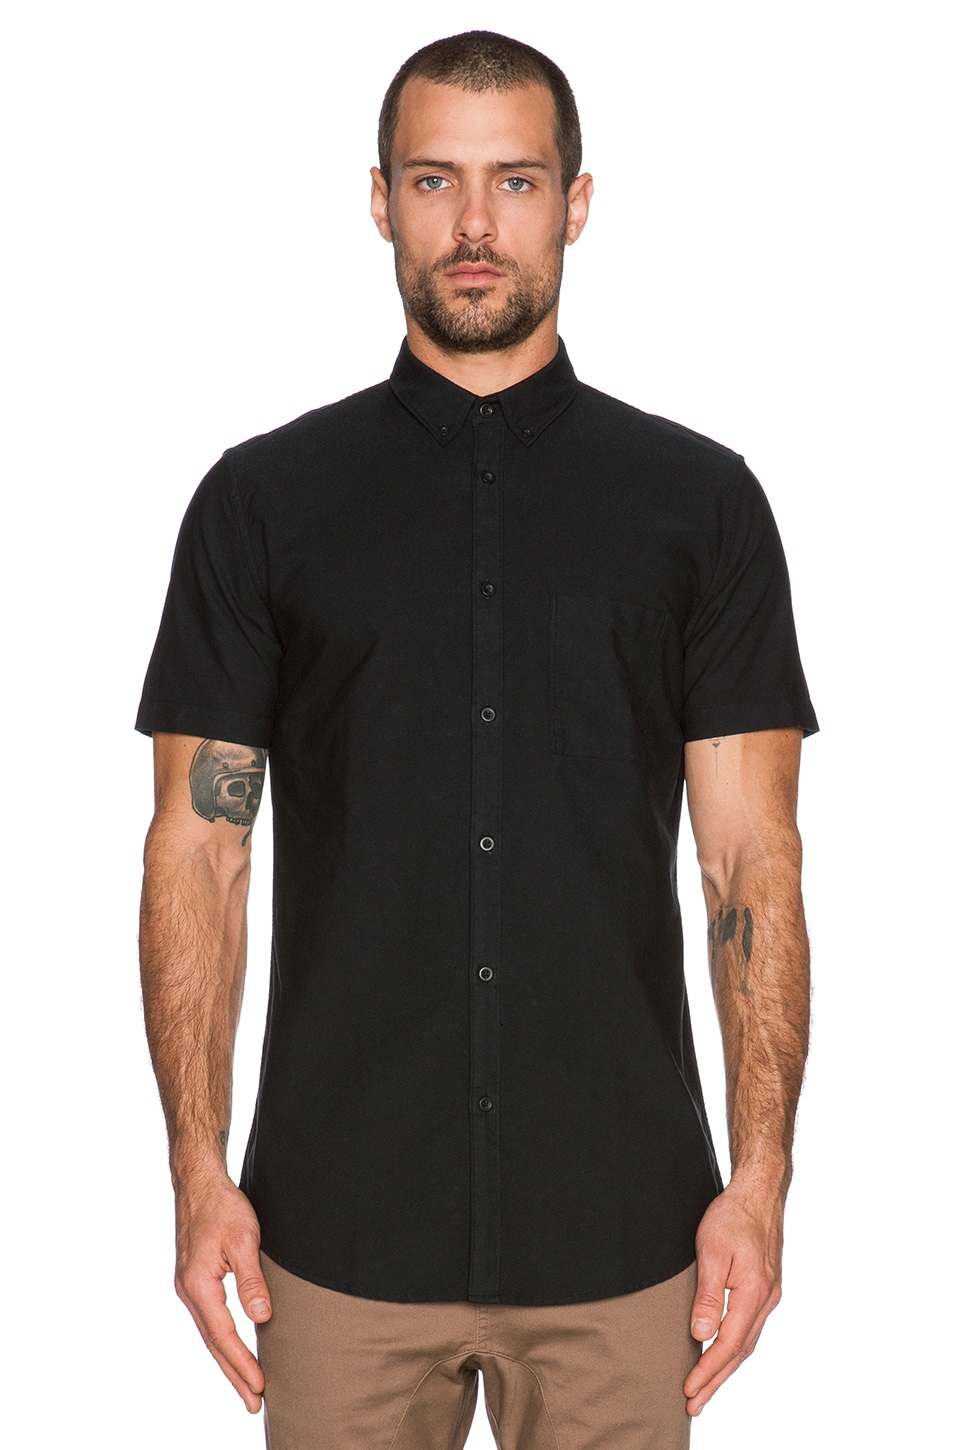 Zanerobe Seven Foot Shirt in Black